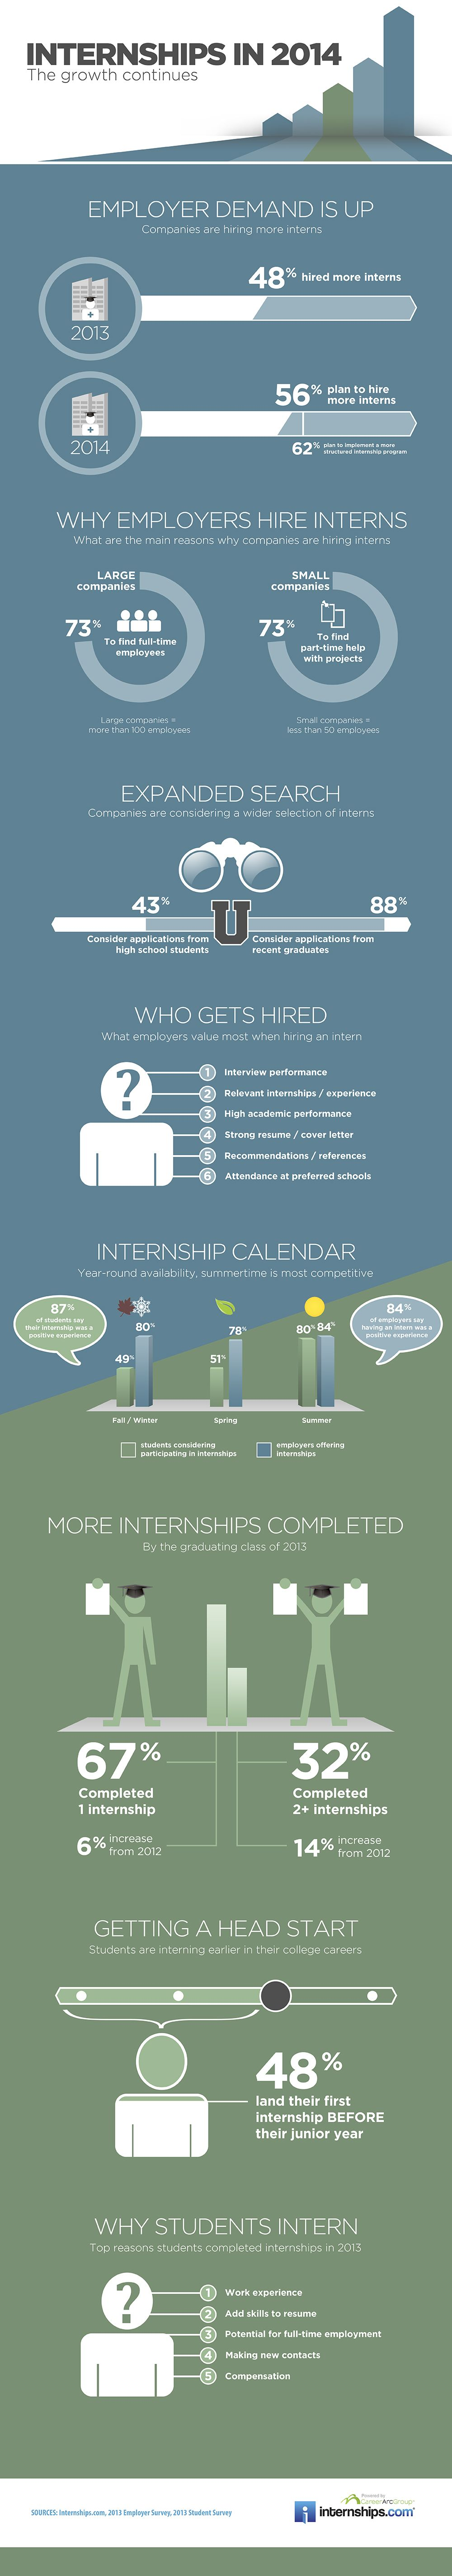 images about internships